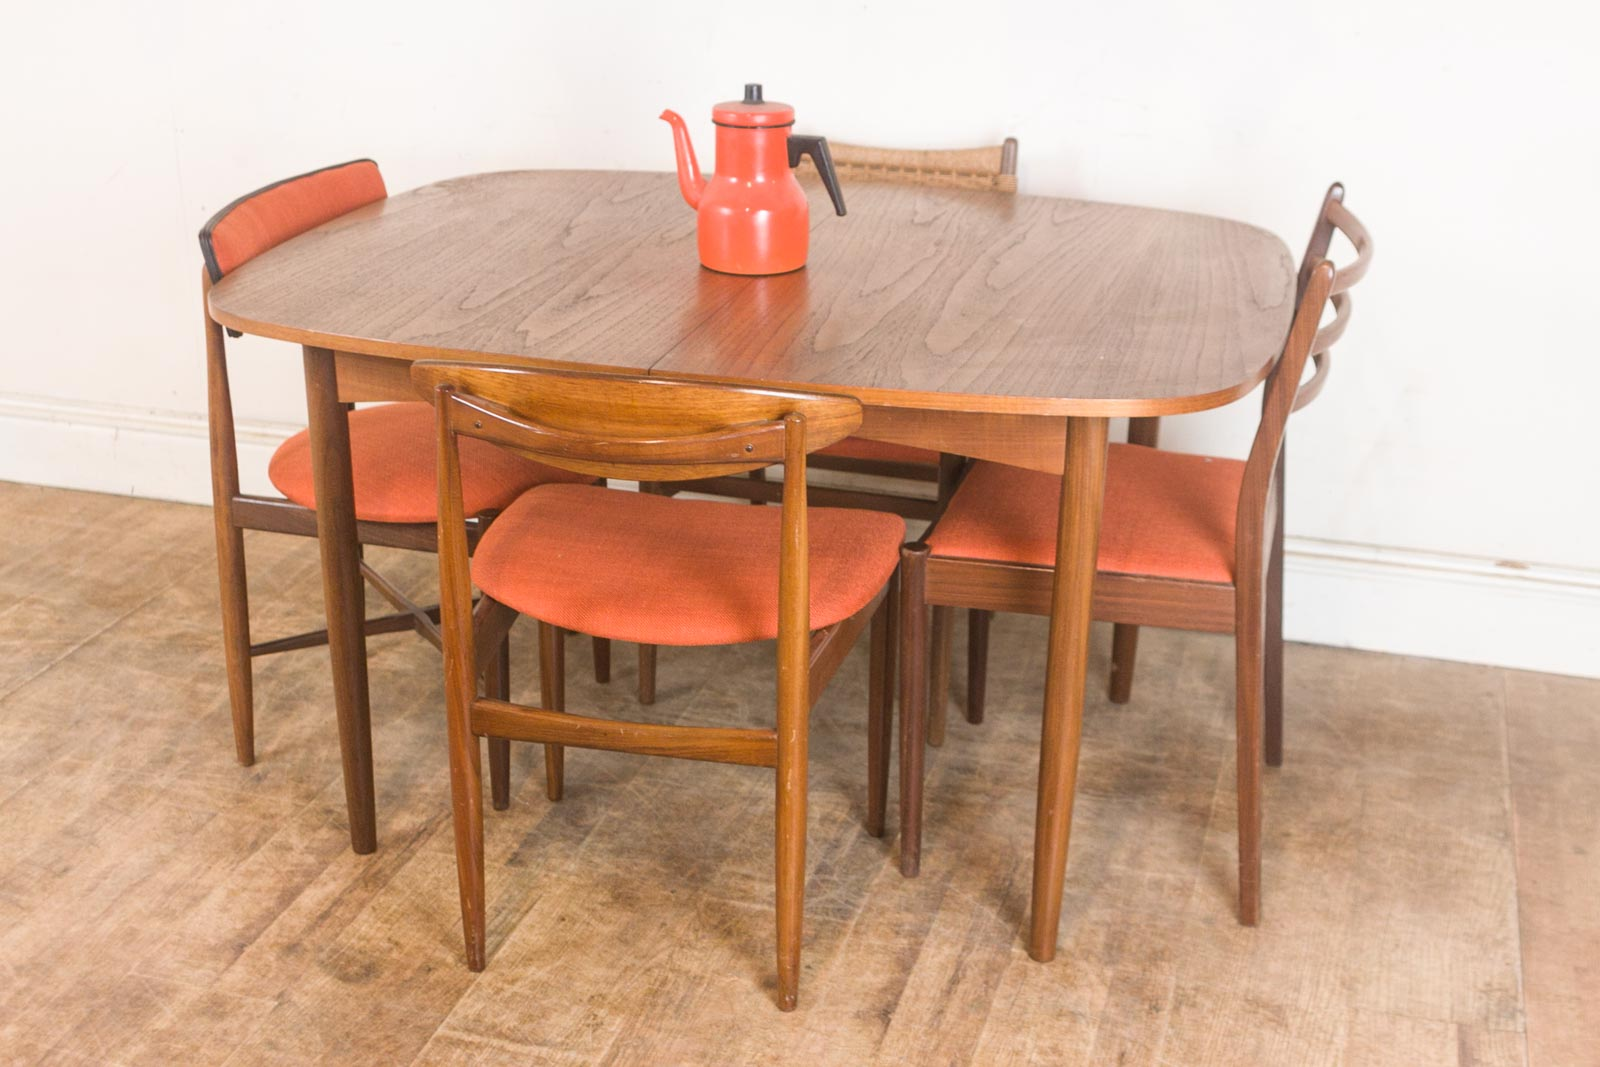 Vintage Retro G Plan Teak Oval Dining Table and 4 Mixed G  : hV040613 2 from www.ebay.co.uk size 1600 x 1067 jpeg 189kB